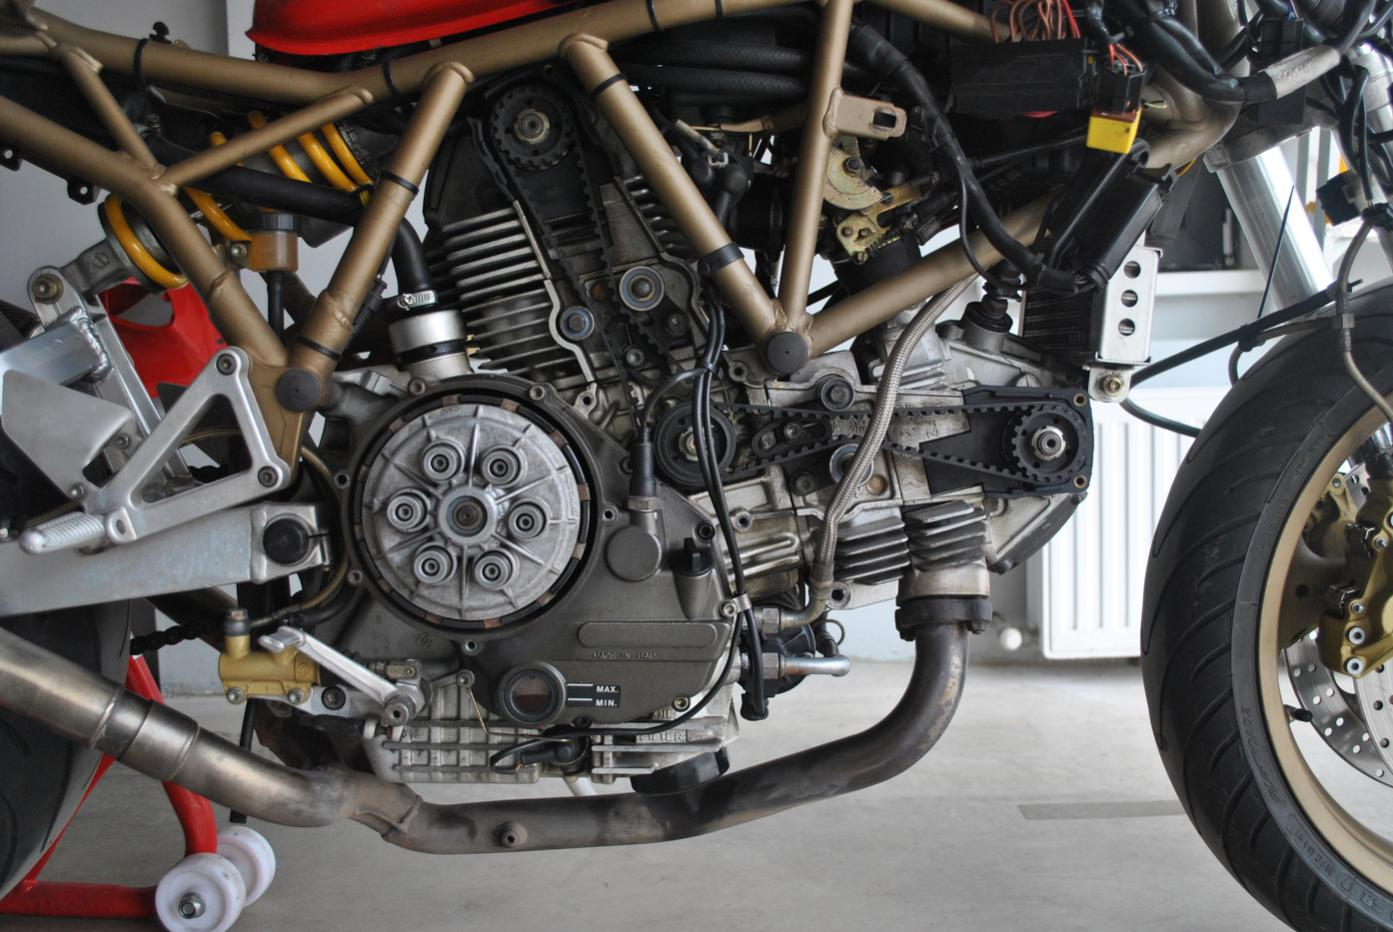 Ducati 900ss Ground Wiring - What Is This